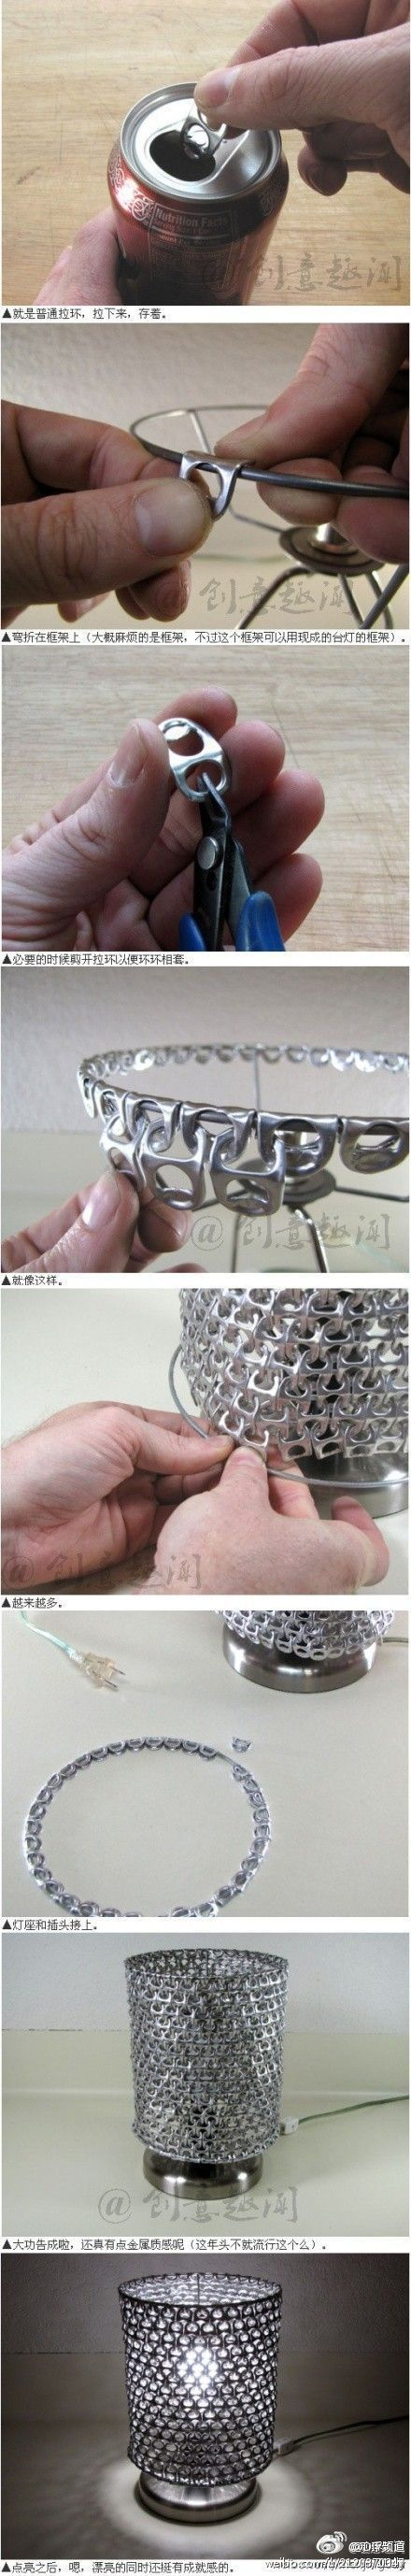 can pull tabs